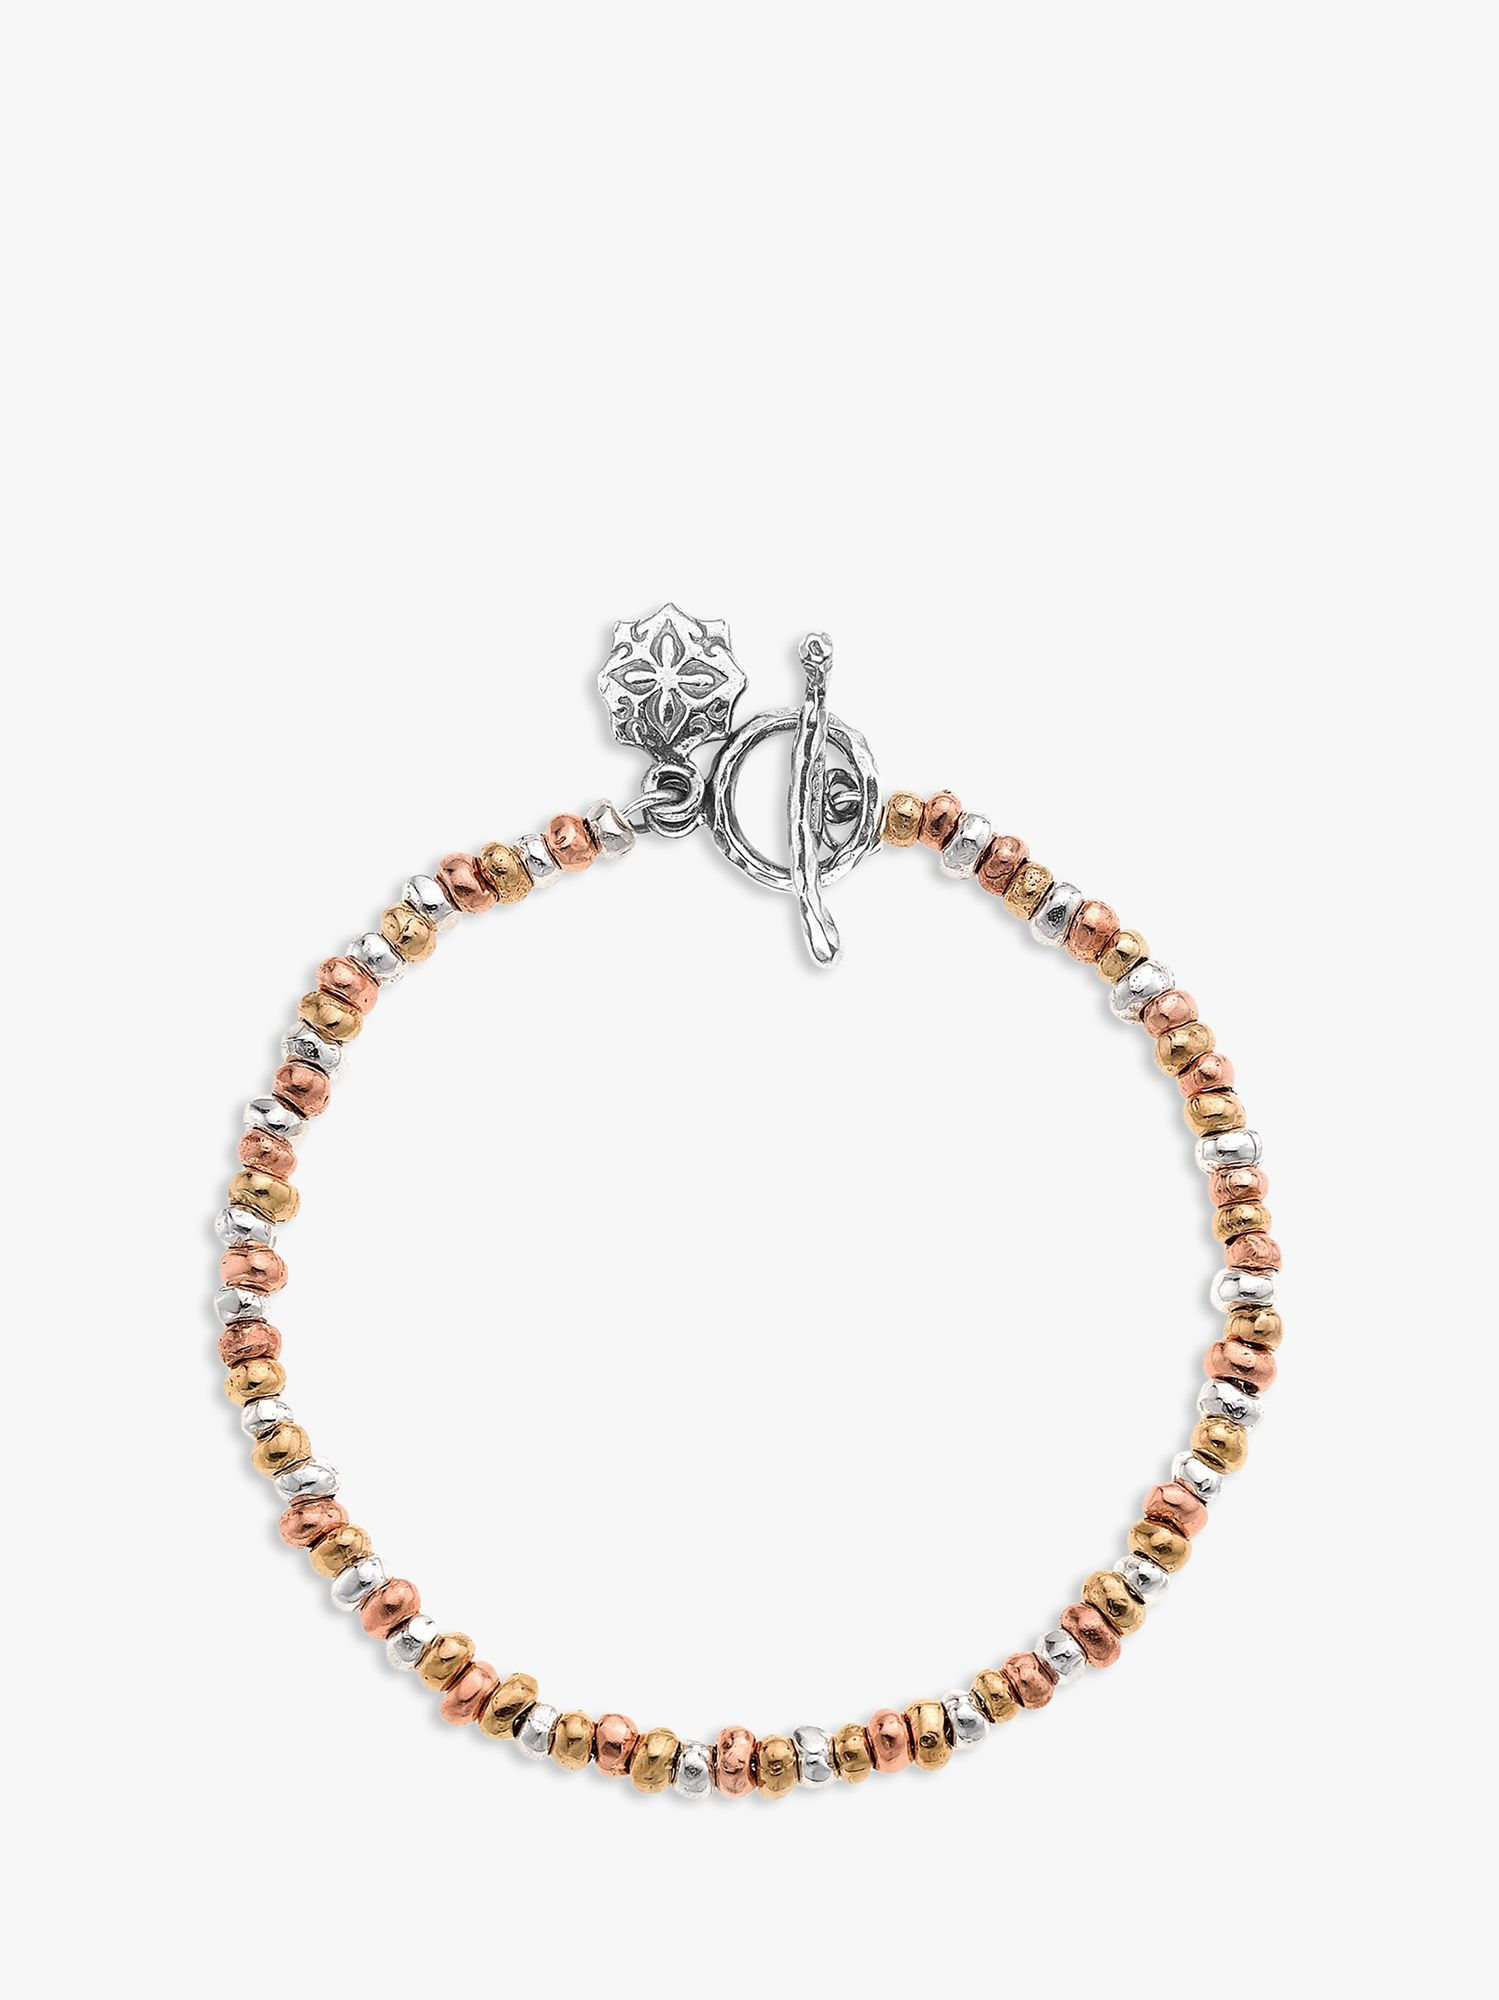 Dower & Hall Dower & Hall Nomad Nugget Tri-Colour Mixed Bracelet, Gold/Silver